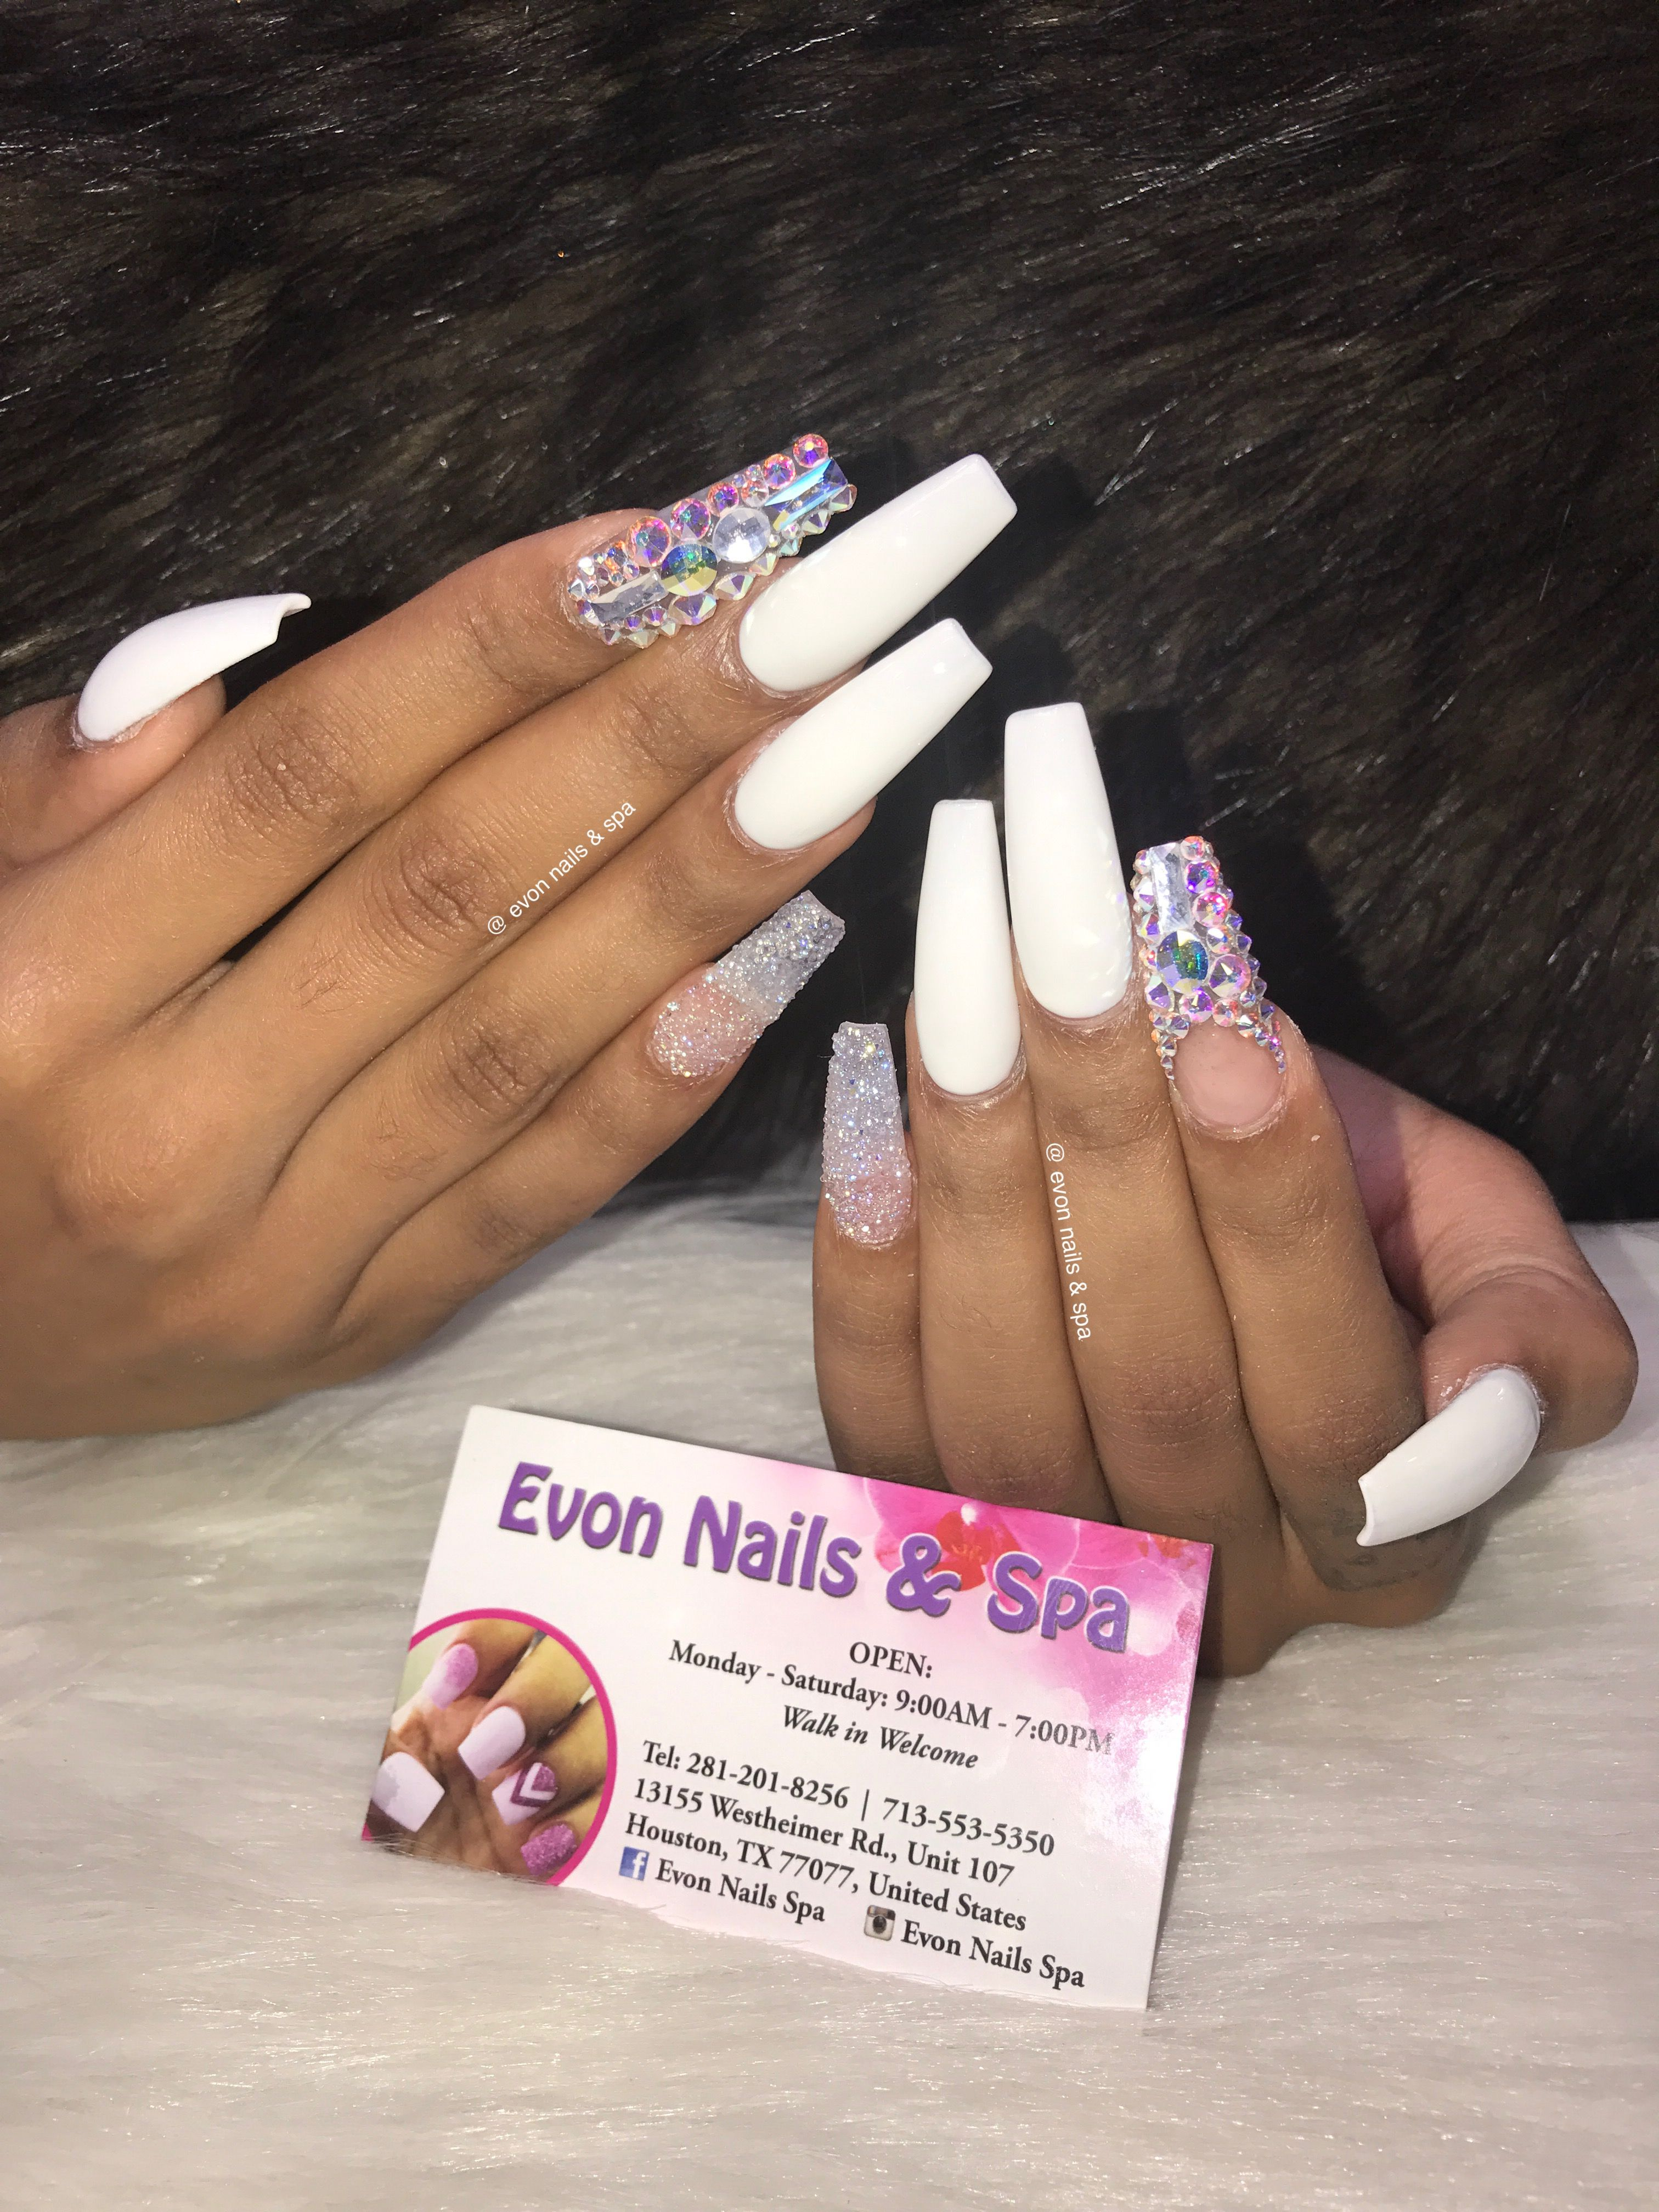 Pin On Evon Nails Spa Instagram Evon Nails Spa Facebook